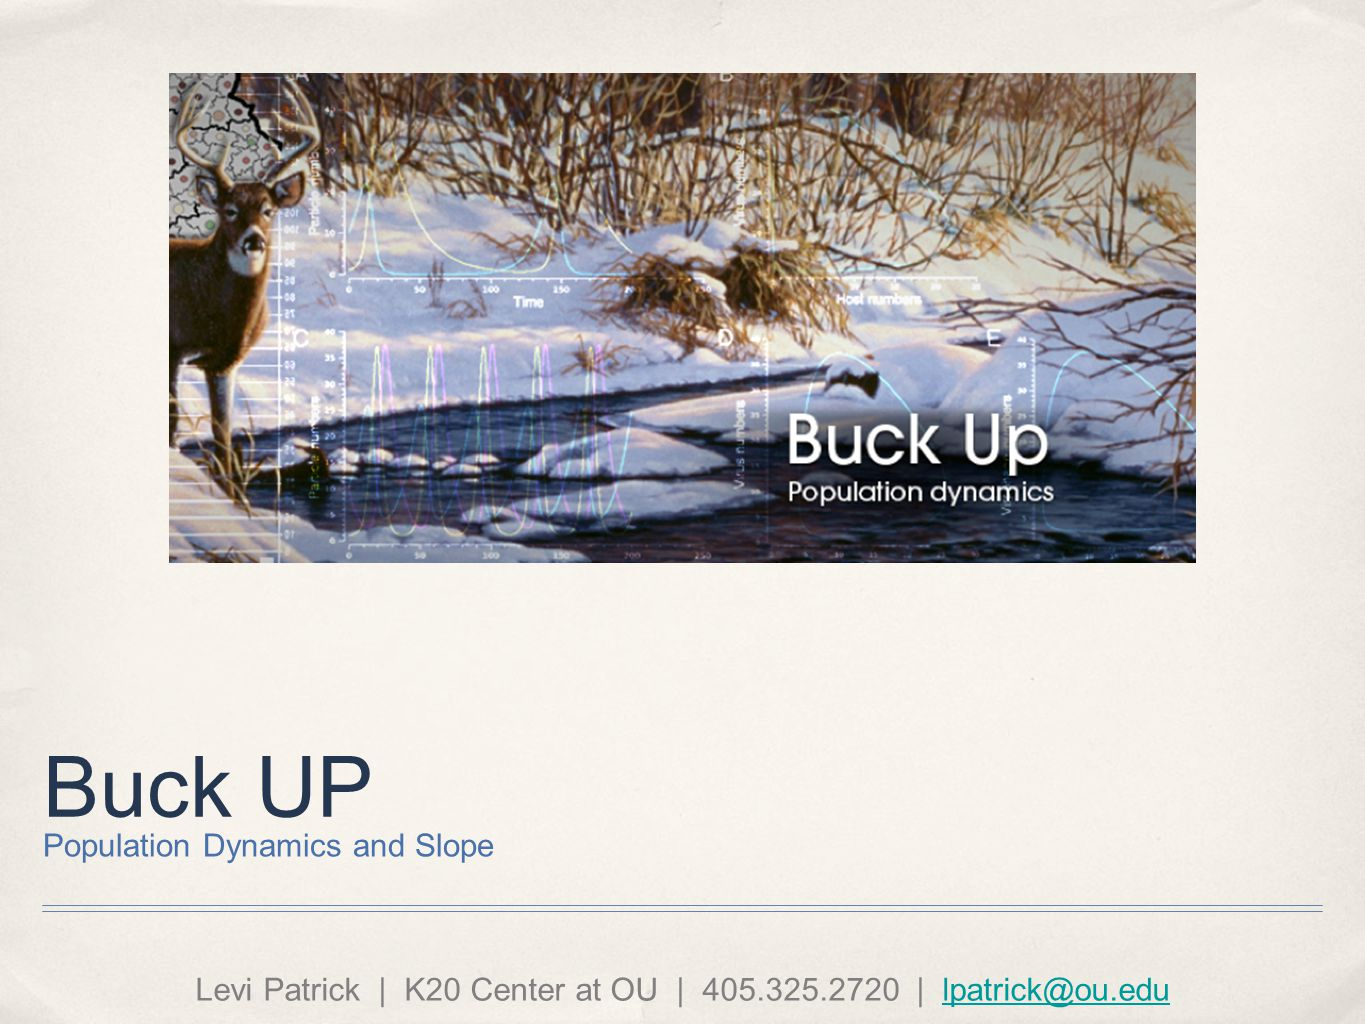 Buck UP Population Dynamics and Slope Levi Patrick | K20 Center at OU | 405.325.2720 | lpatrick@ou.edulpatrick@ou.edu